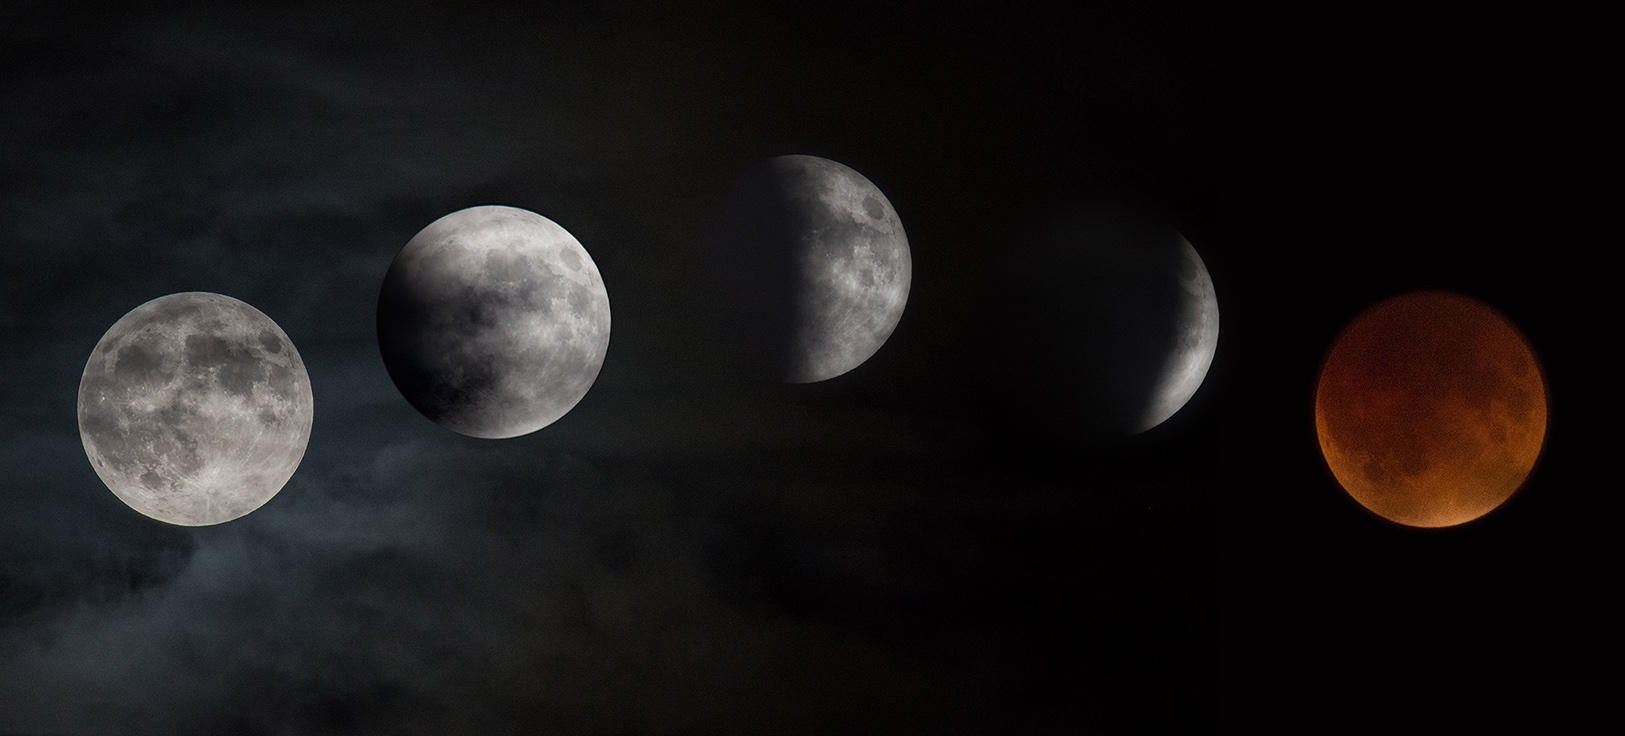 The supermoon lunar eclipse captured as it moved over NASA's Glenn Research Center on Sept. 27, 2015. Another total lunar eclipse will happen Sunday, Jan. 20. (Photo by Rami Daud/NASA)